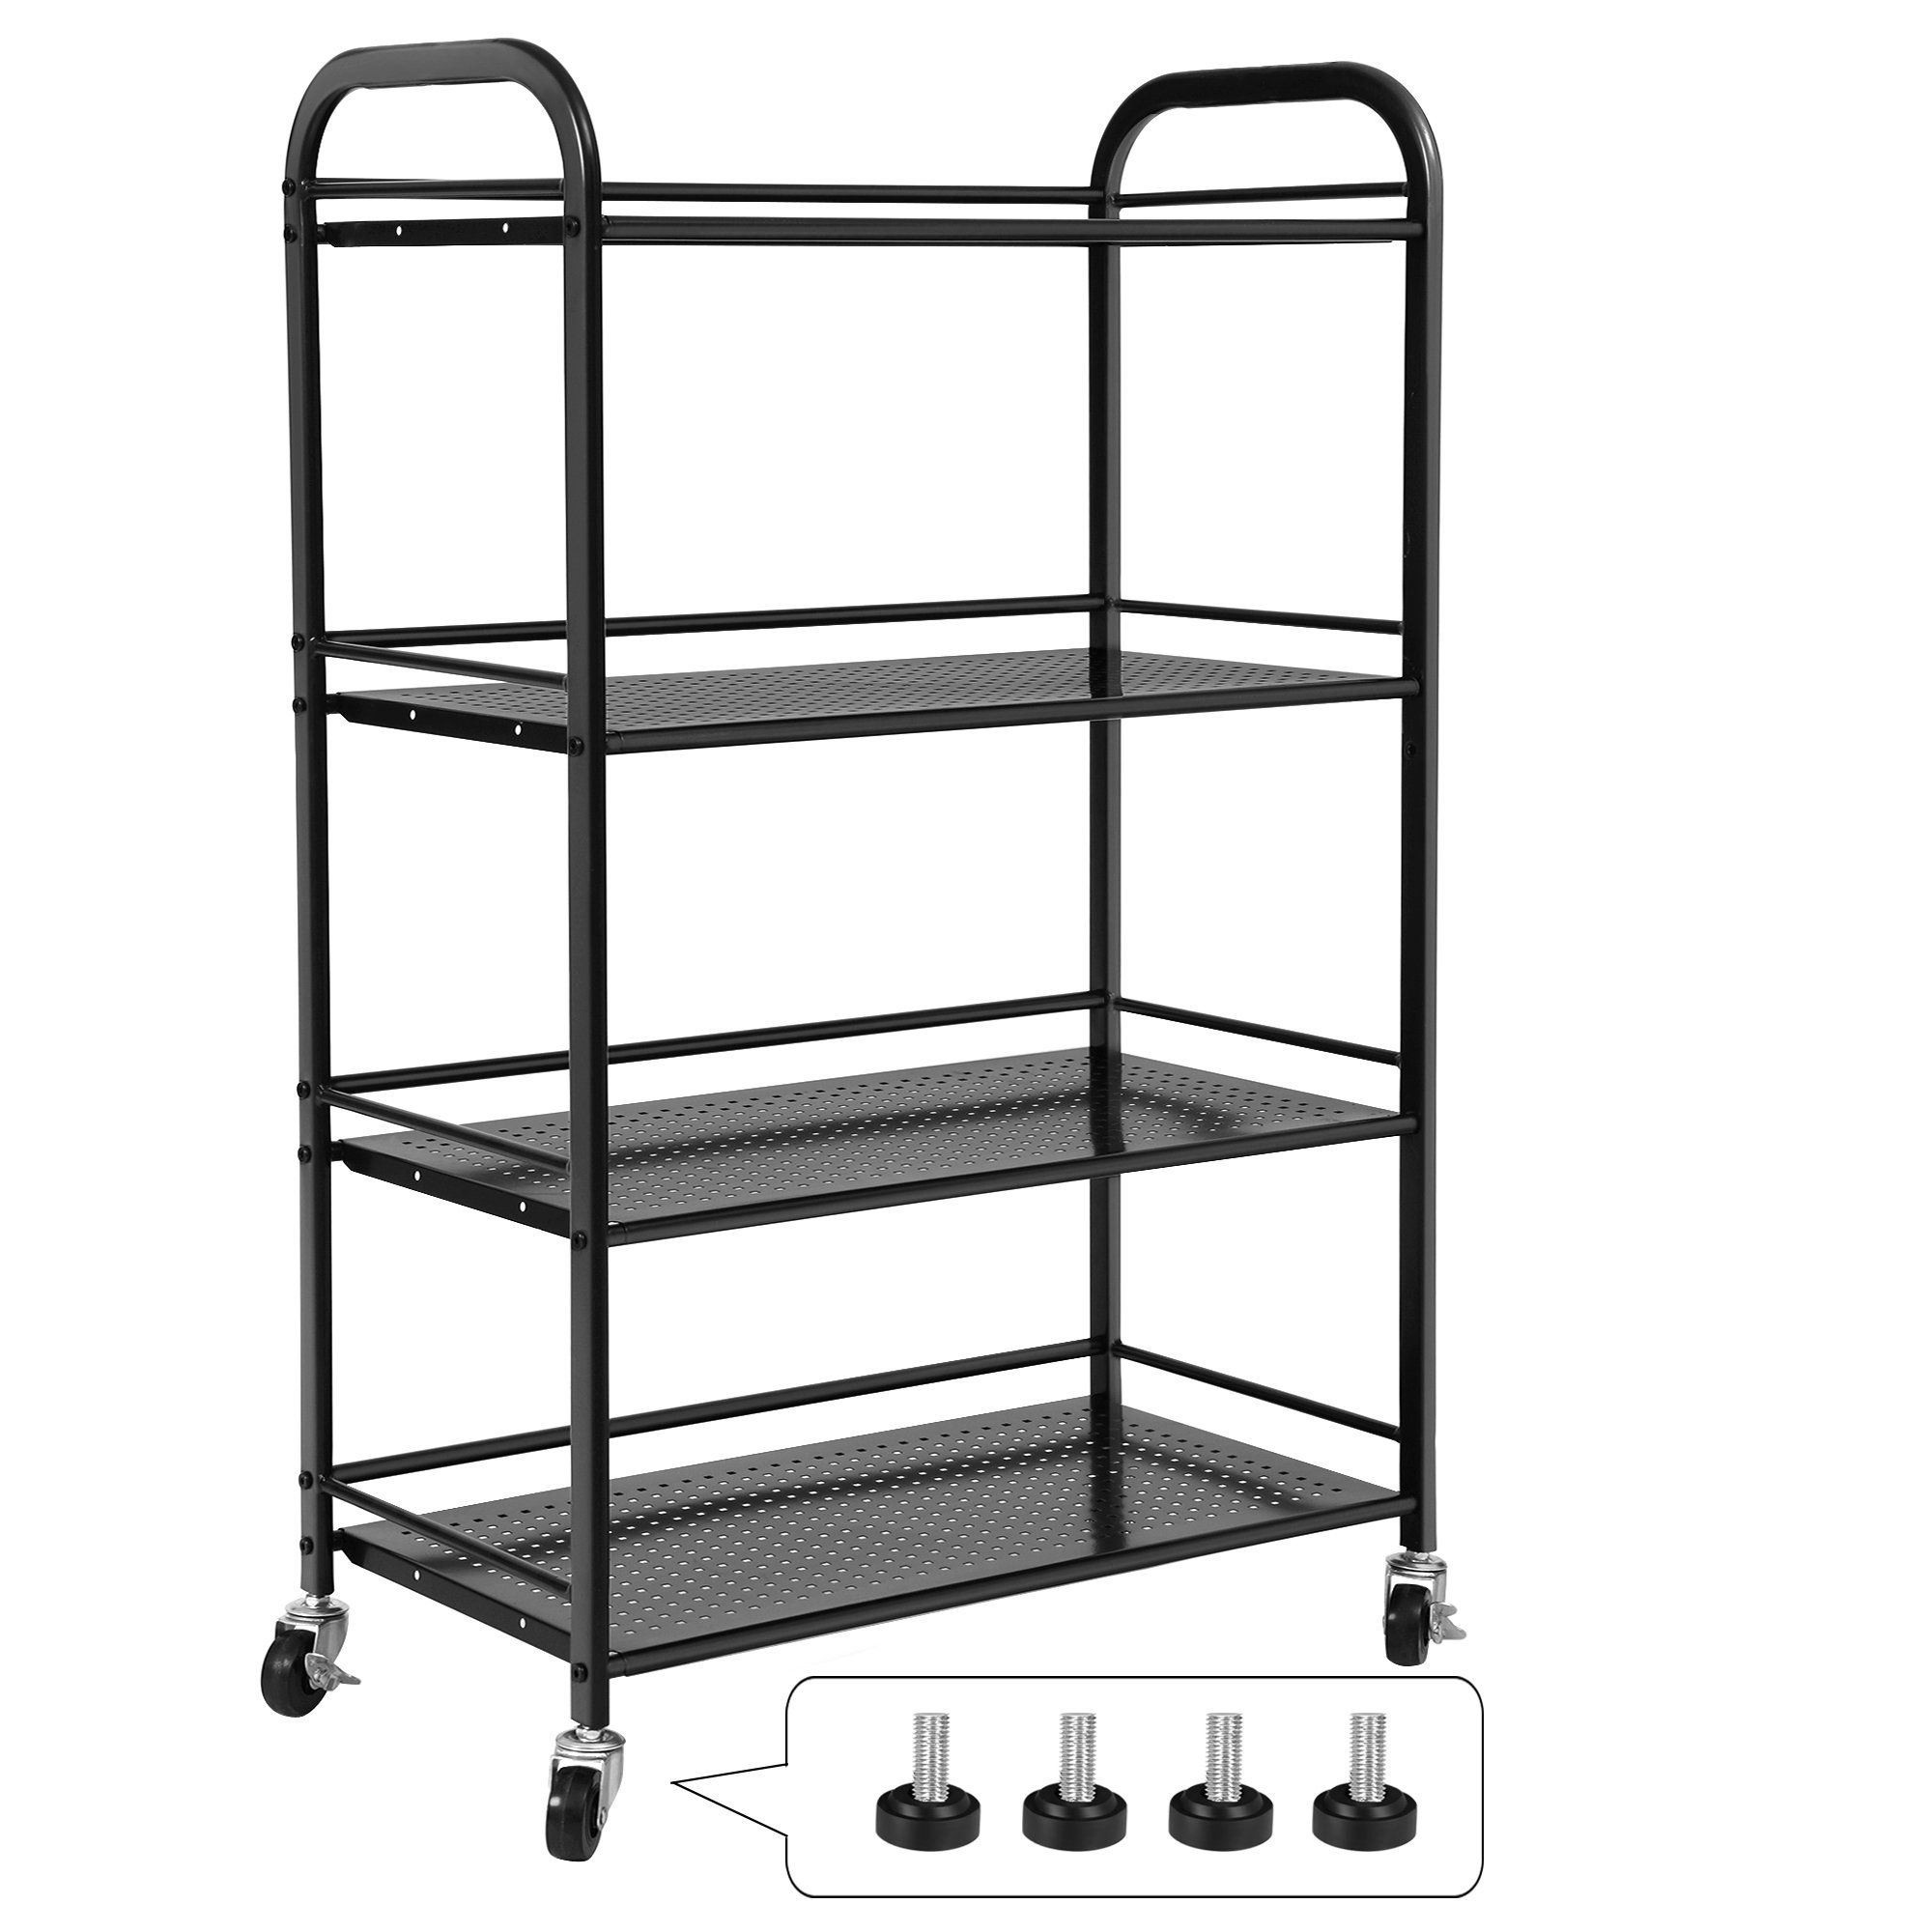 SONGMICS 4-Tier Storage Cart on Wheels Weight Capacity 176lbs heavy duty Utility Storage Cart for Kitchen Pantry Bathroom Black UBSC14B